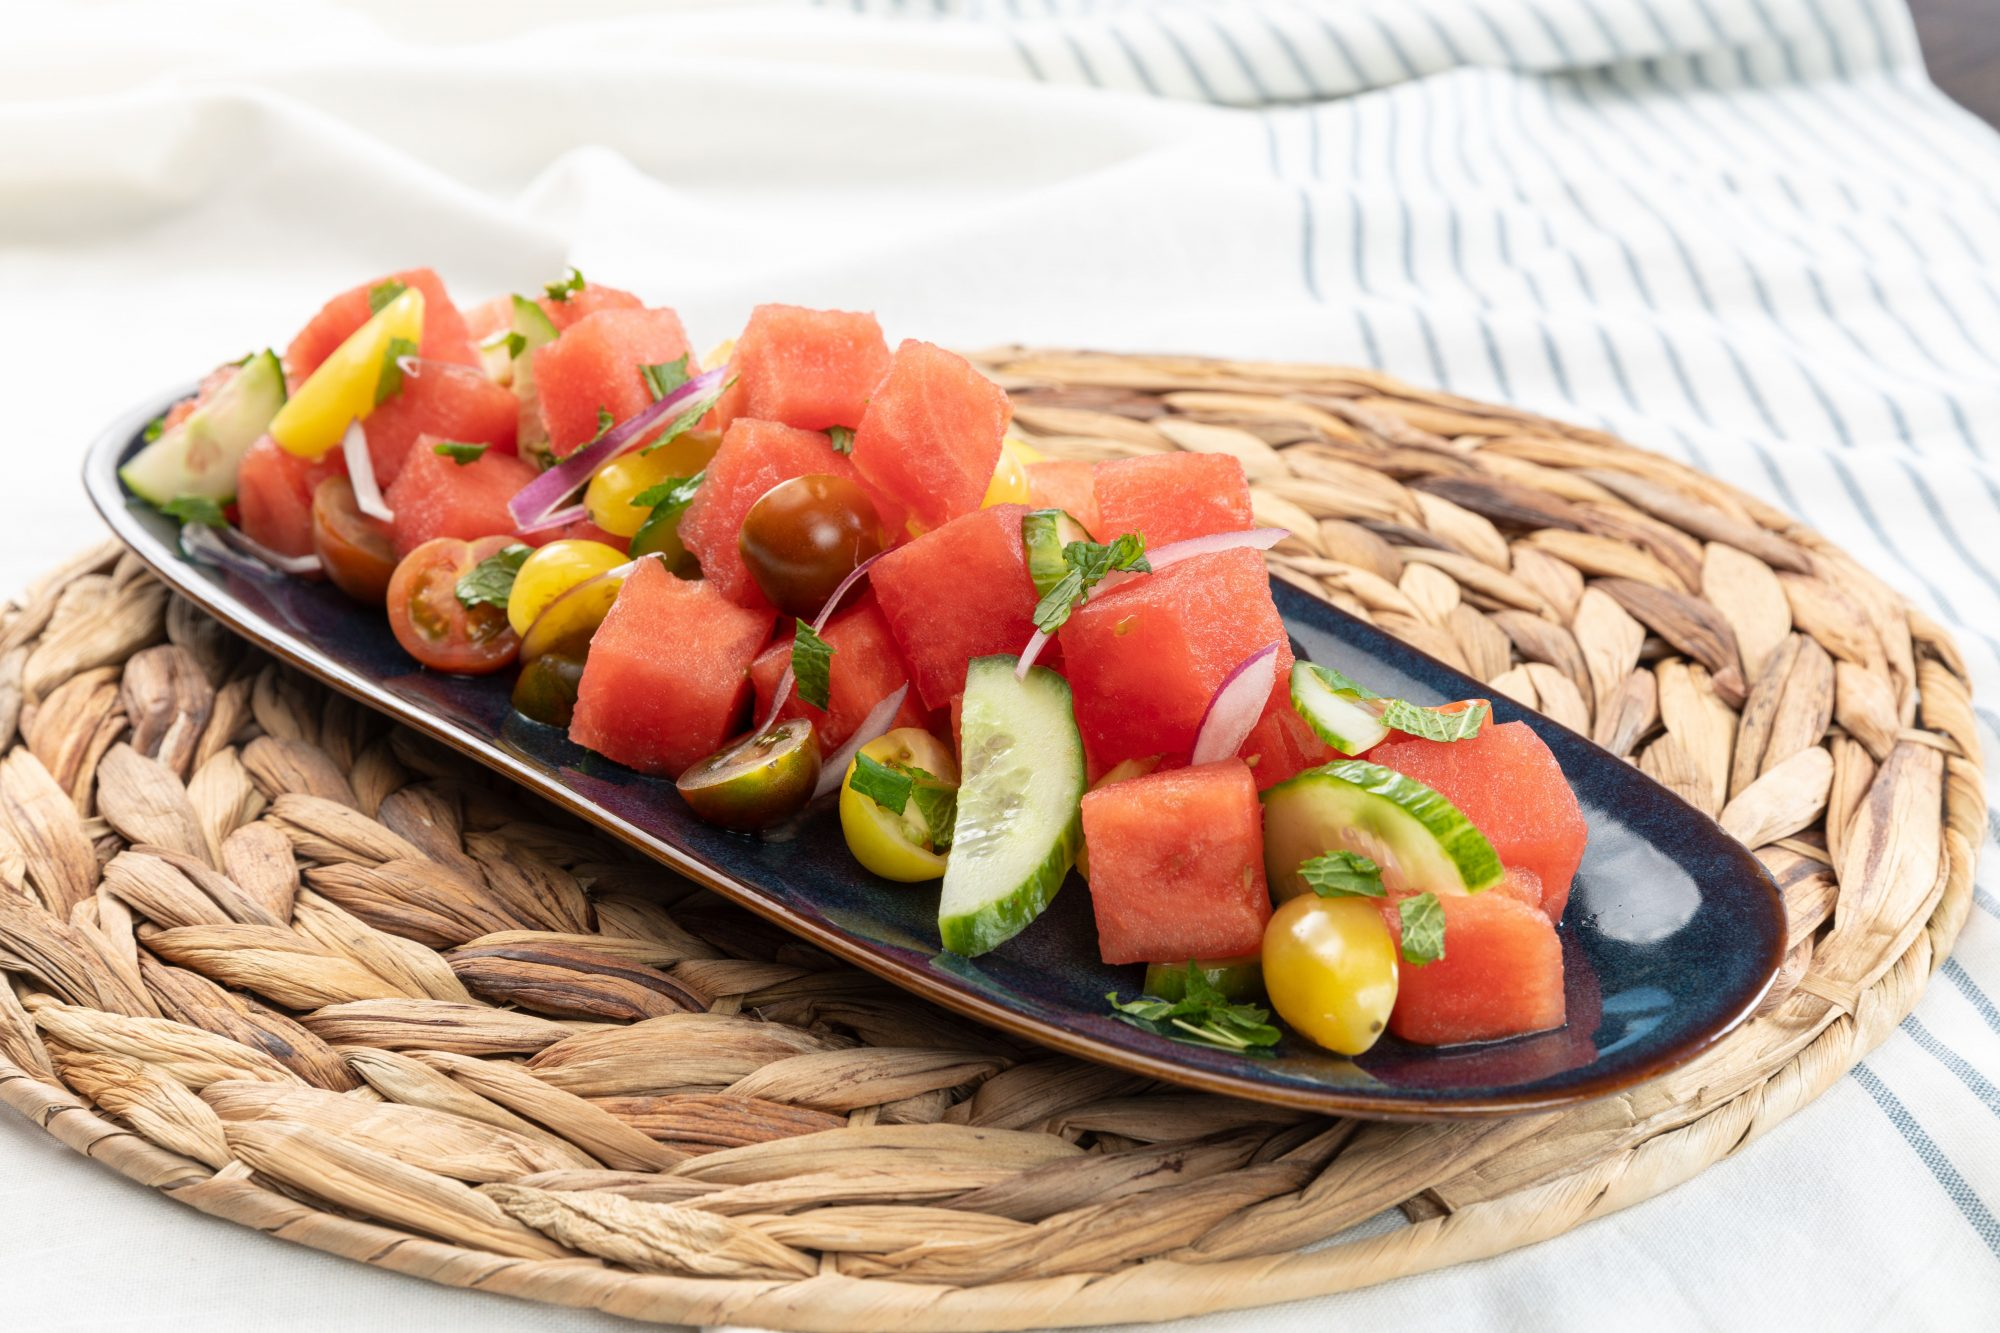 Tomato and Watermelon Salad Churchill Downs Racetrack